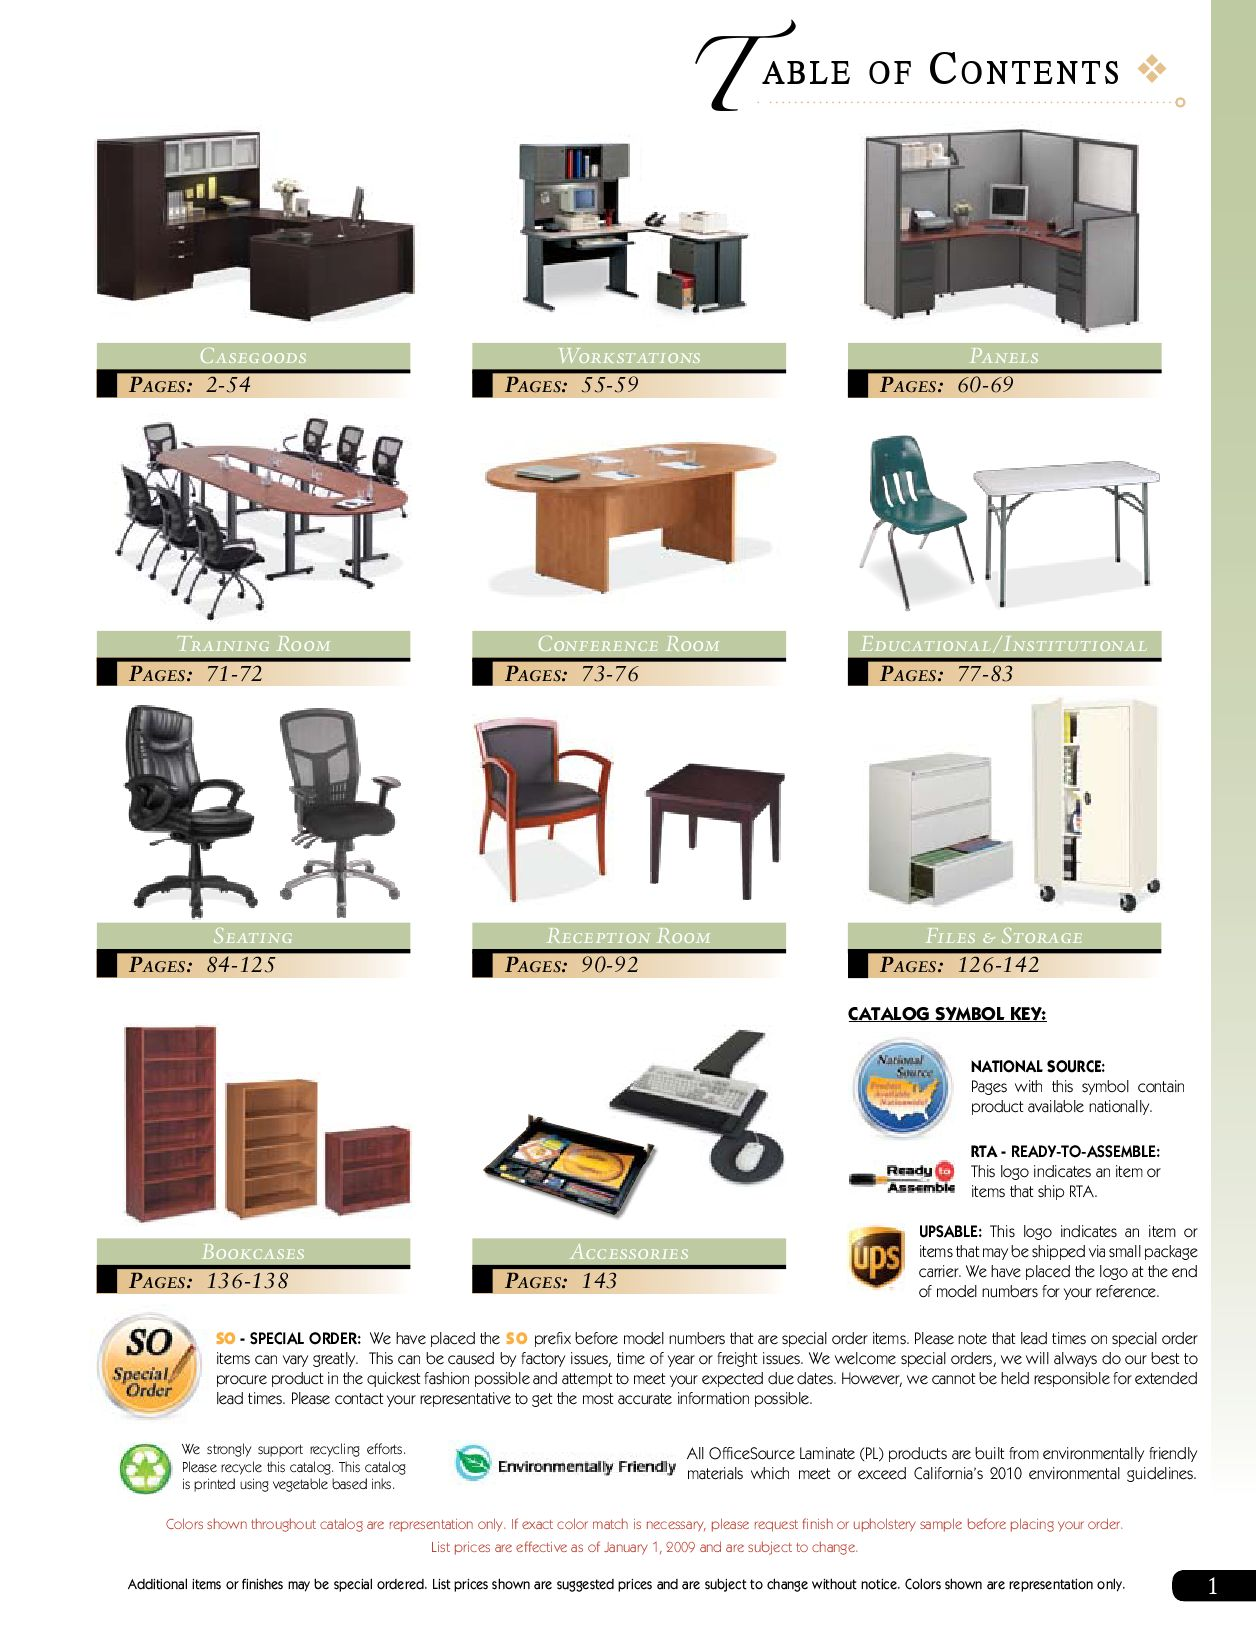 furnitures list office source furniture catalog by mathias juhas issuu